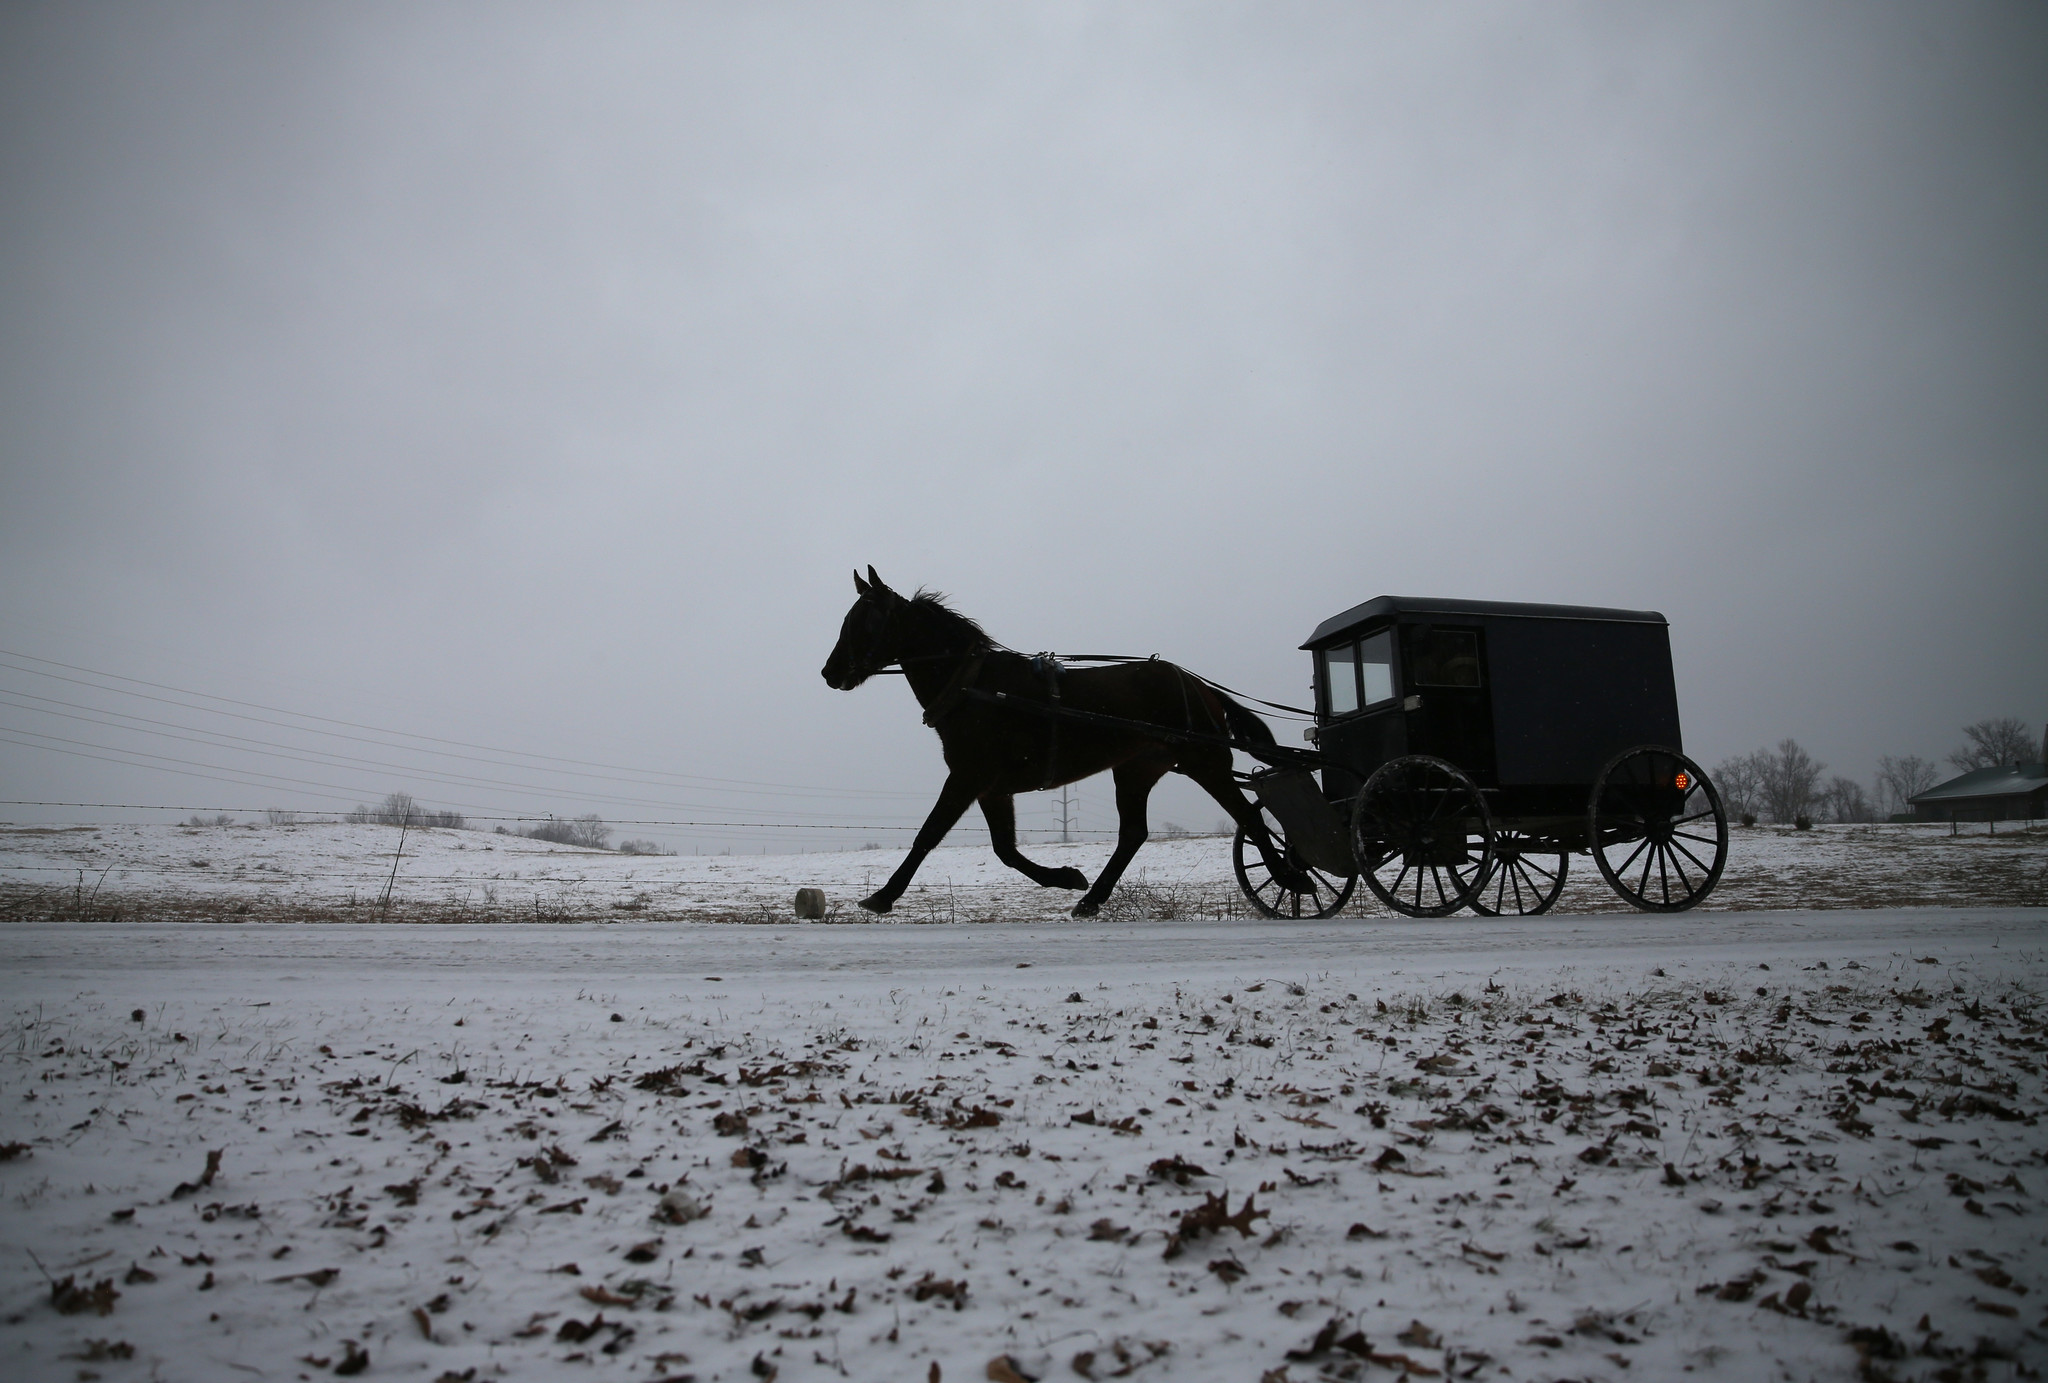 Amish buggies in Ohio may have to add flashing lights under proposed law